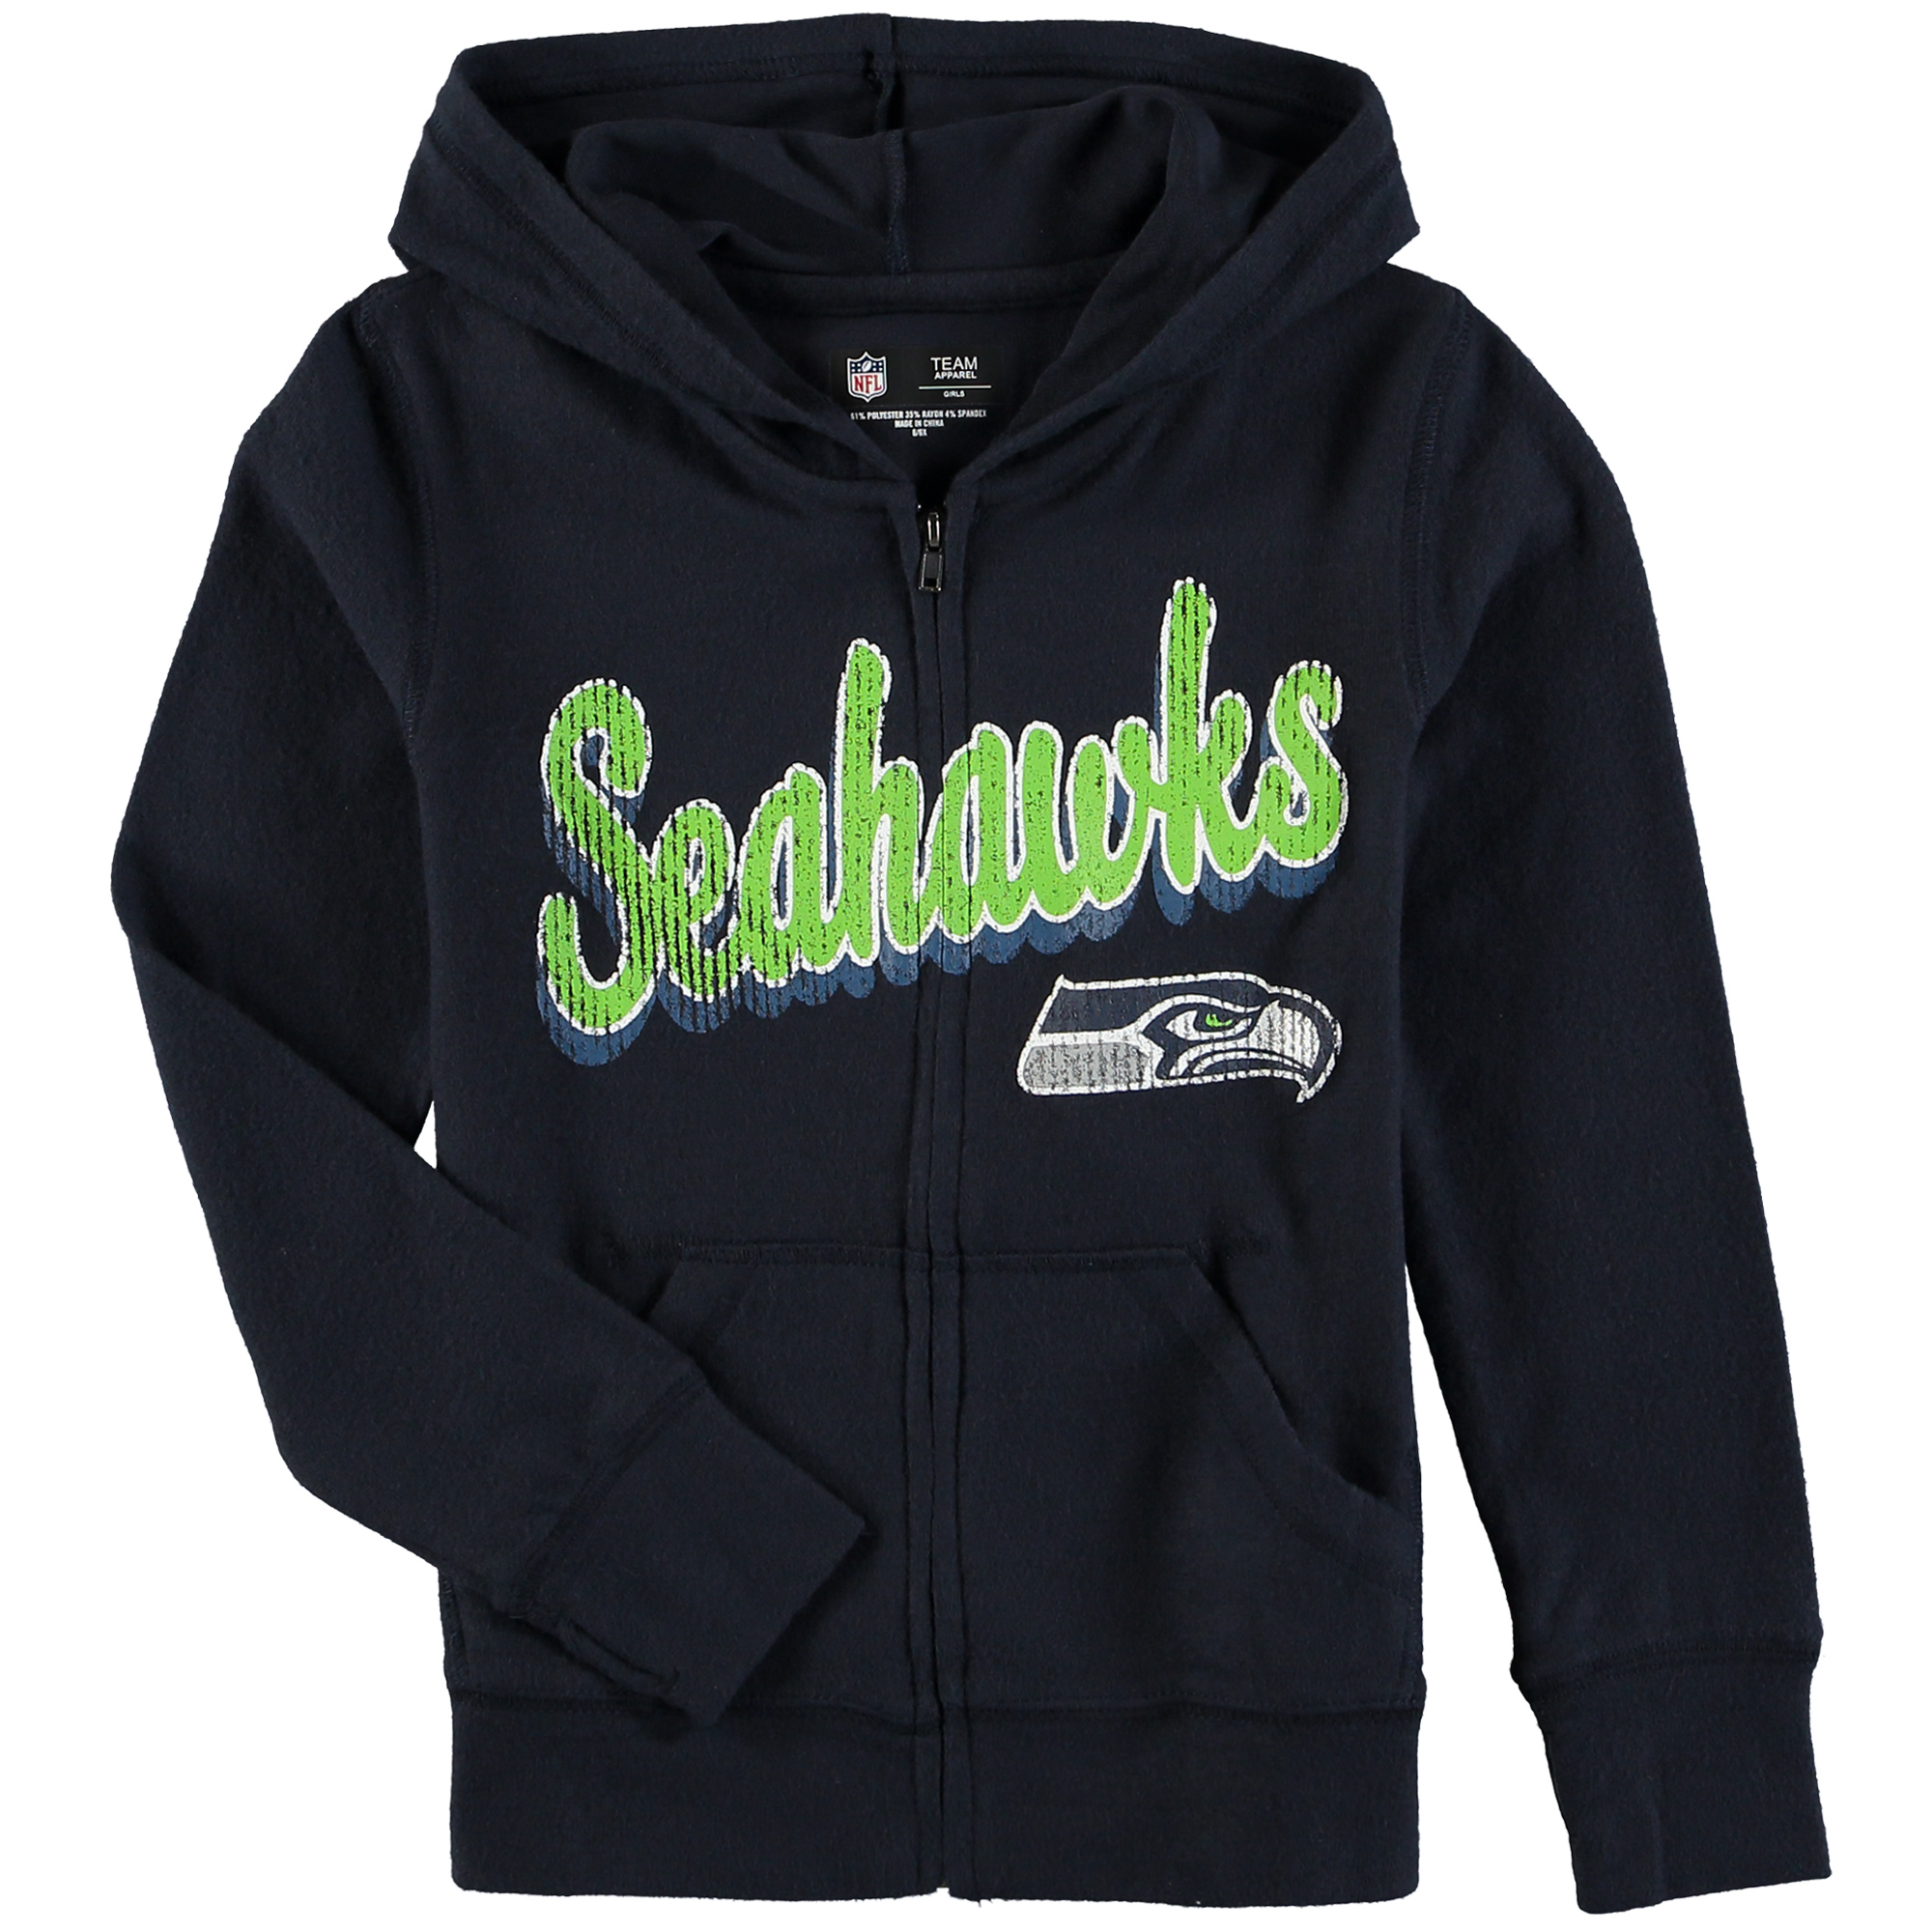 Seattle Seahawks 5th & Ocean by New Era Girls Youth Brushed Knit Tri-Blend Full-Zip Hoodie - College Navy